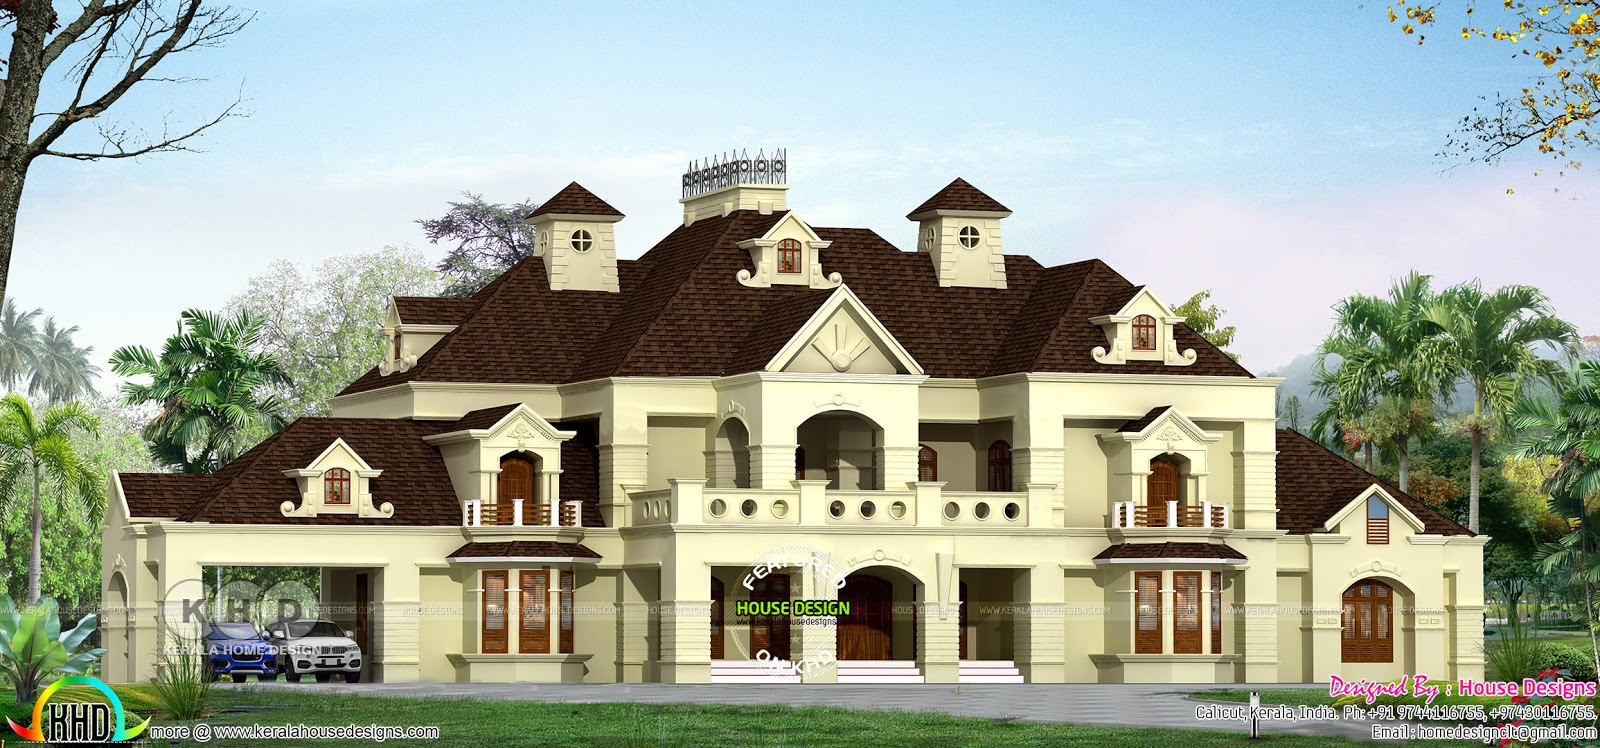 Luxury colonial style 6 bedroom home architecture kerala for Colonial luxury house plans